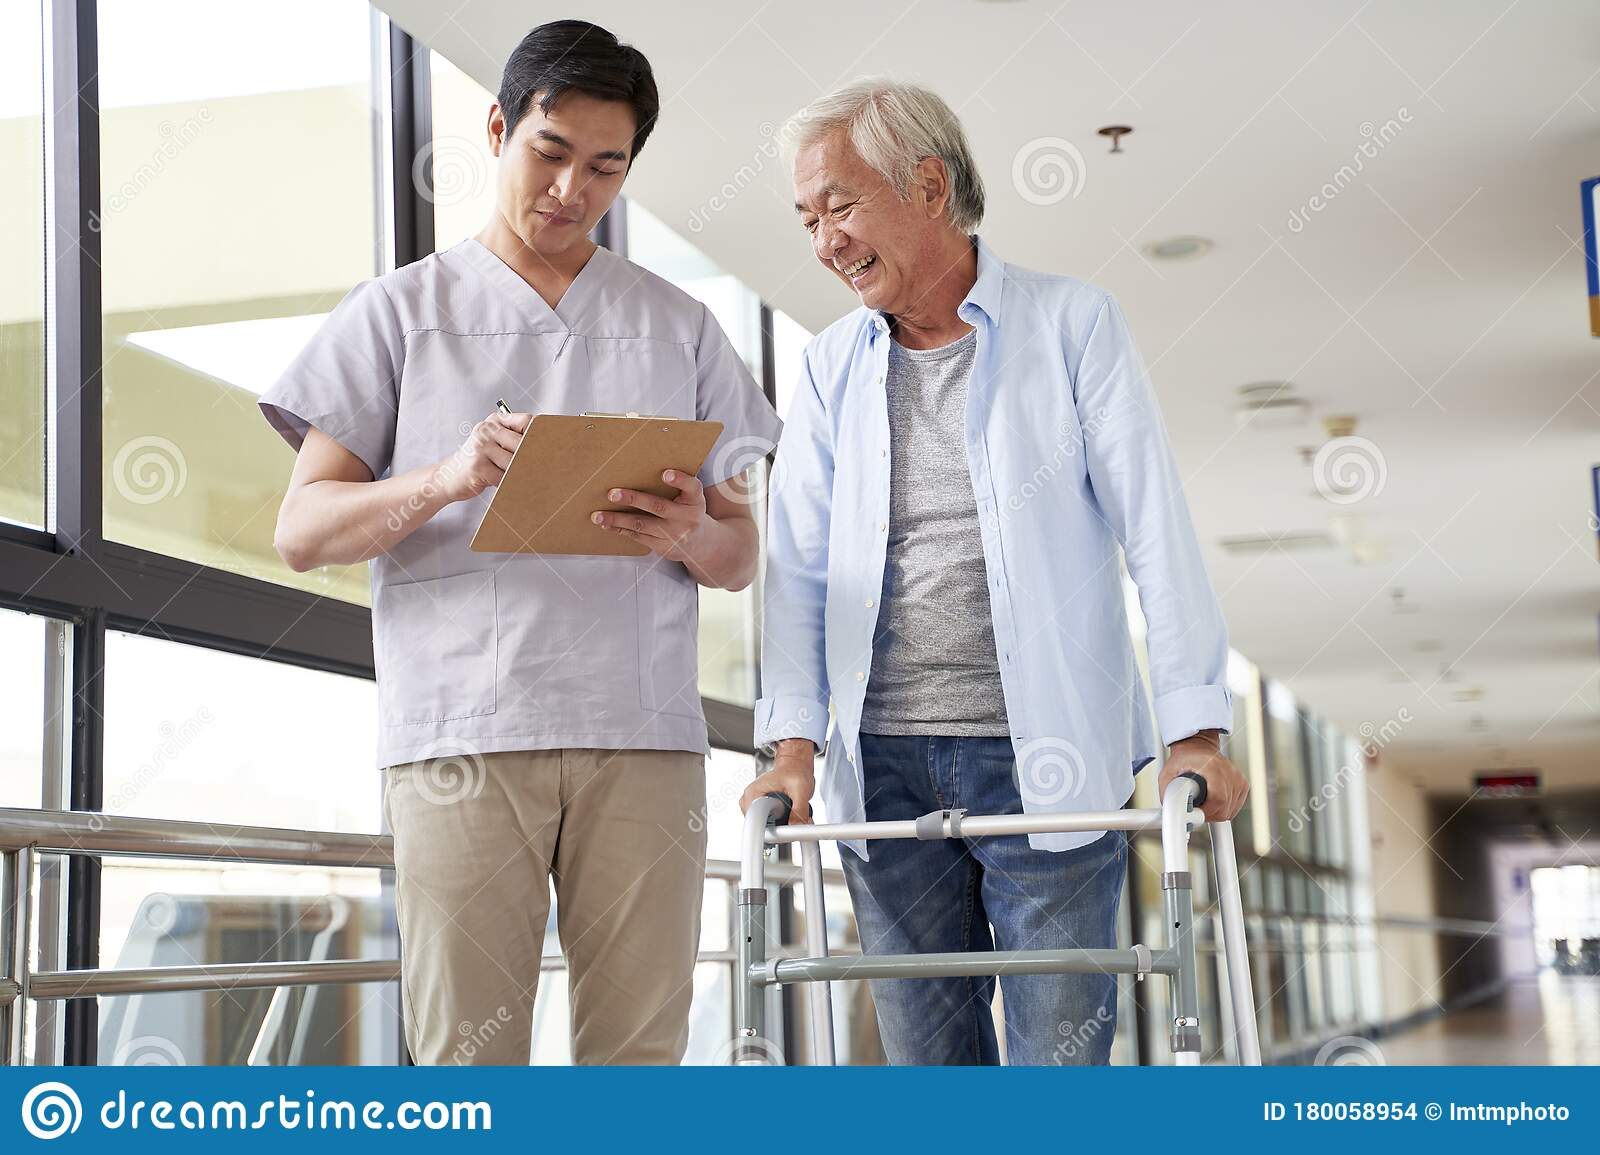 Young Asian Physical Therapist Working With Old Man Stock